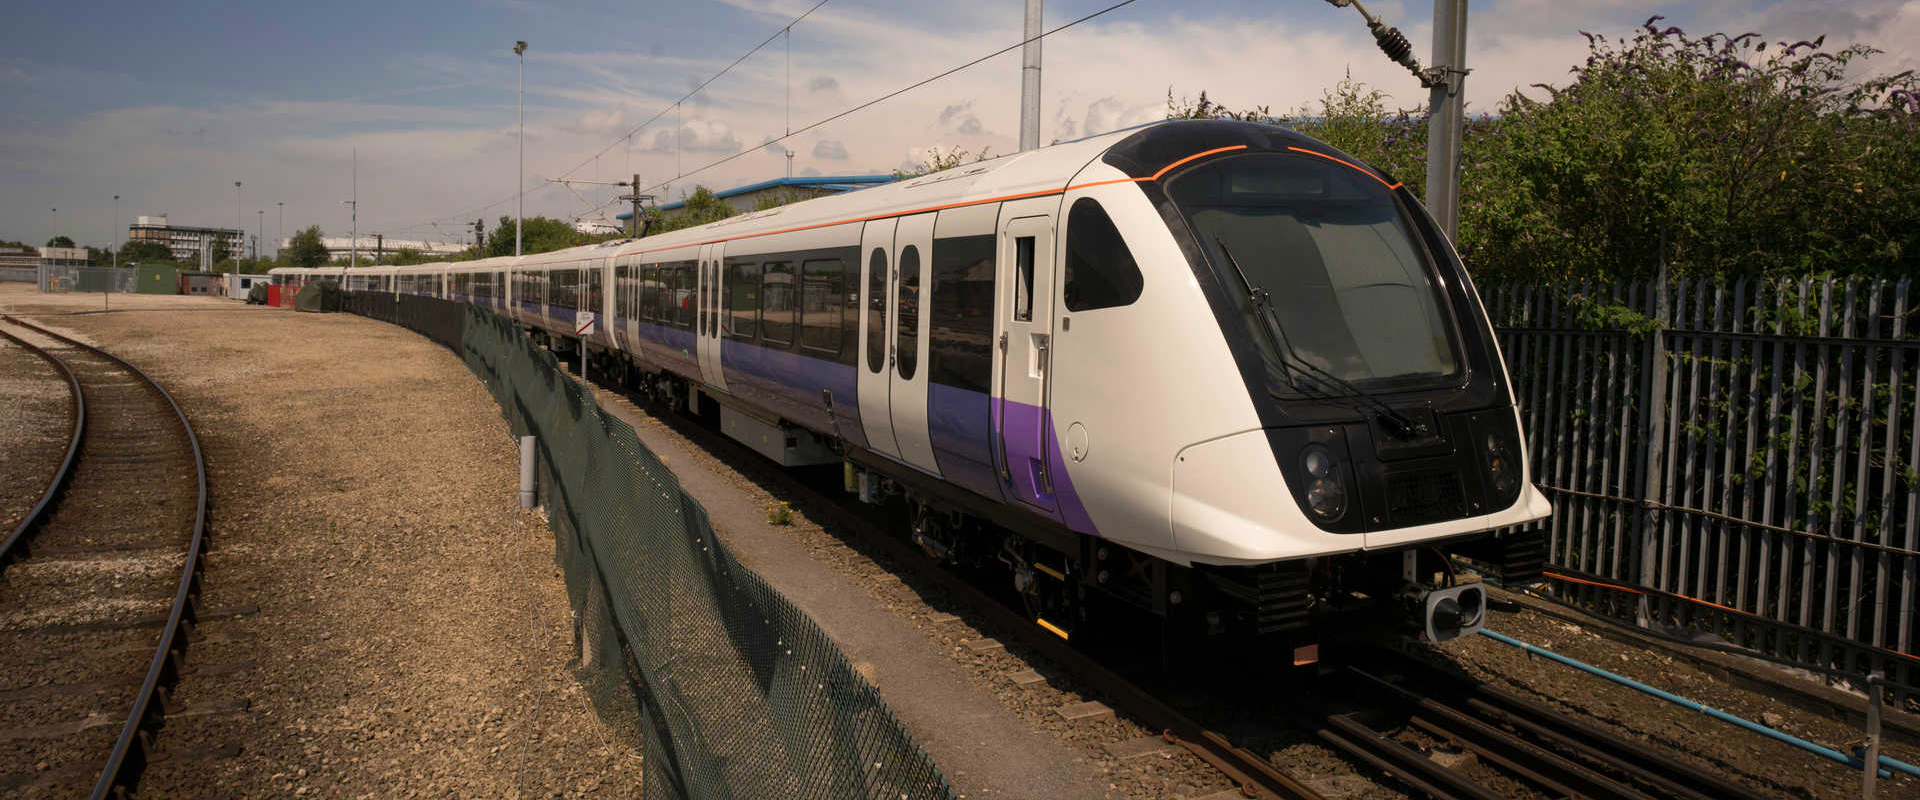 Elizabeth line trains in production_carousel_242726